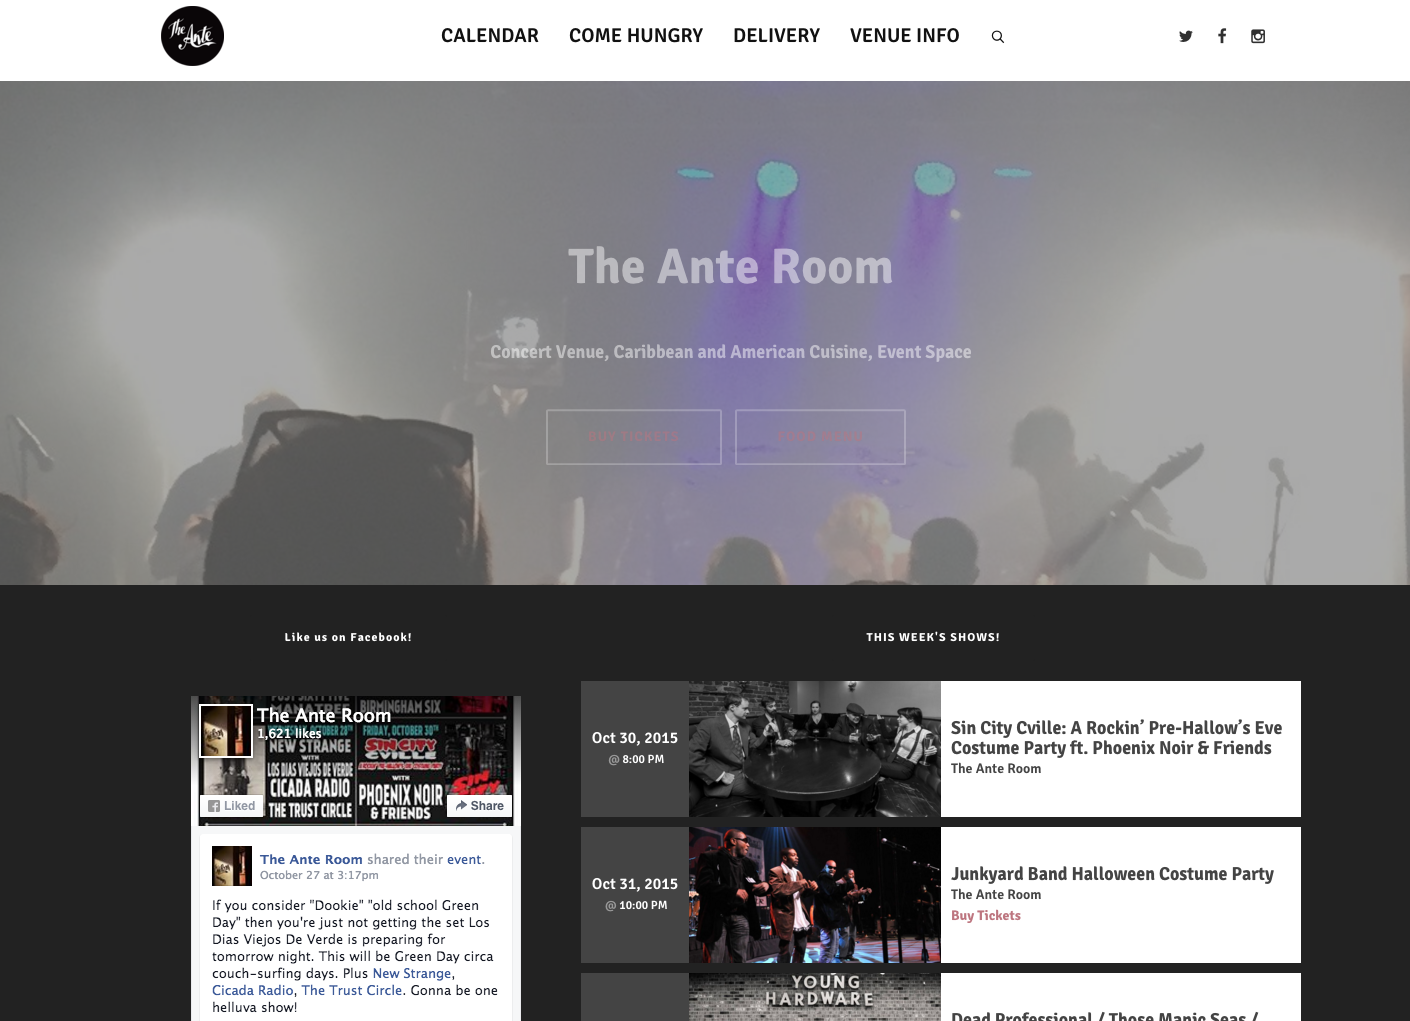 The Ante Room